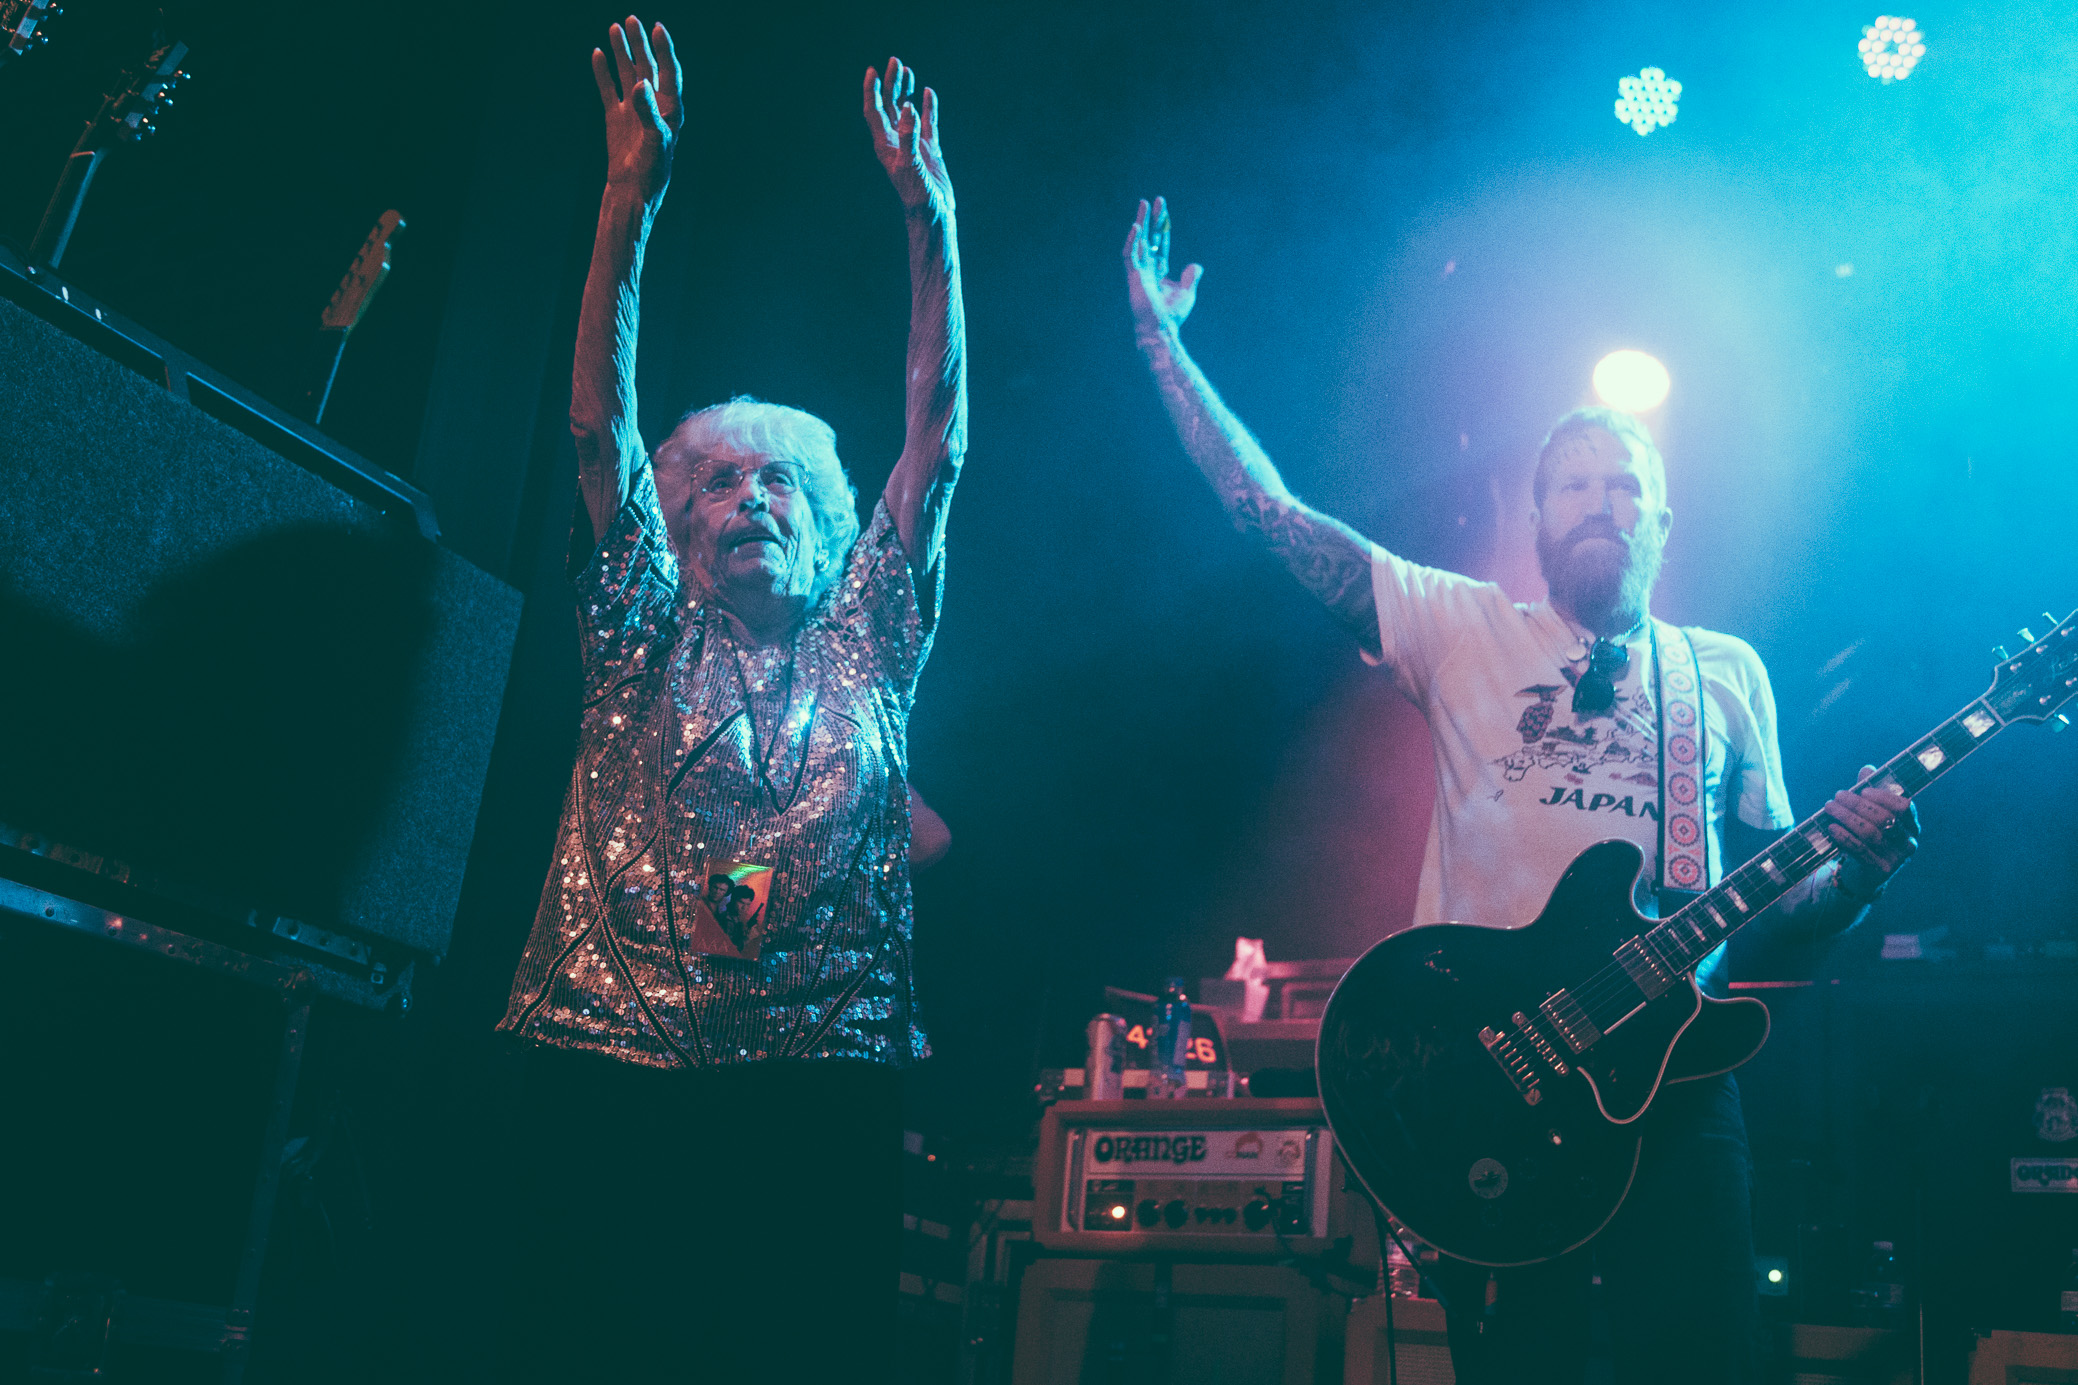 Brent Hinds of Mastodon introduces his 94 year young grandmother to the crowd at Iron City in Birmingham, Alabama. (Photo by David A. Smith/DSmithScenes)